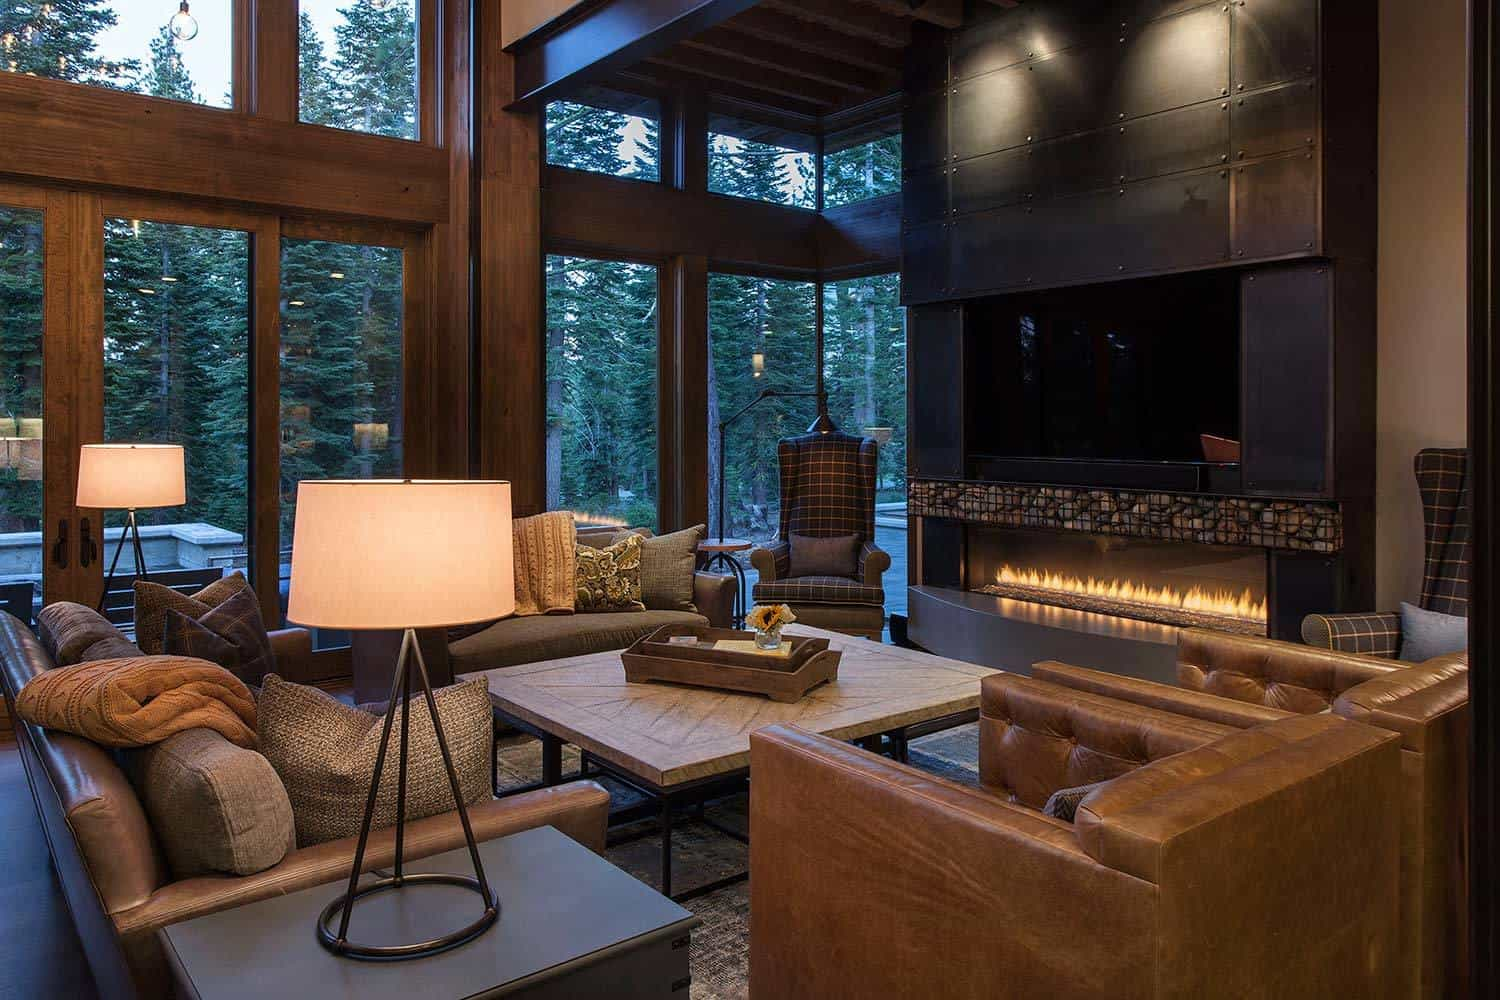 Lake tahoe getaway features contemporary barn aesthetic for Interior design 70s house